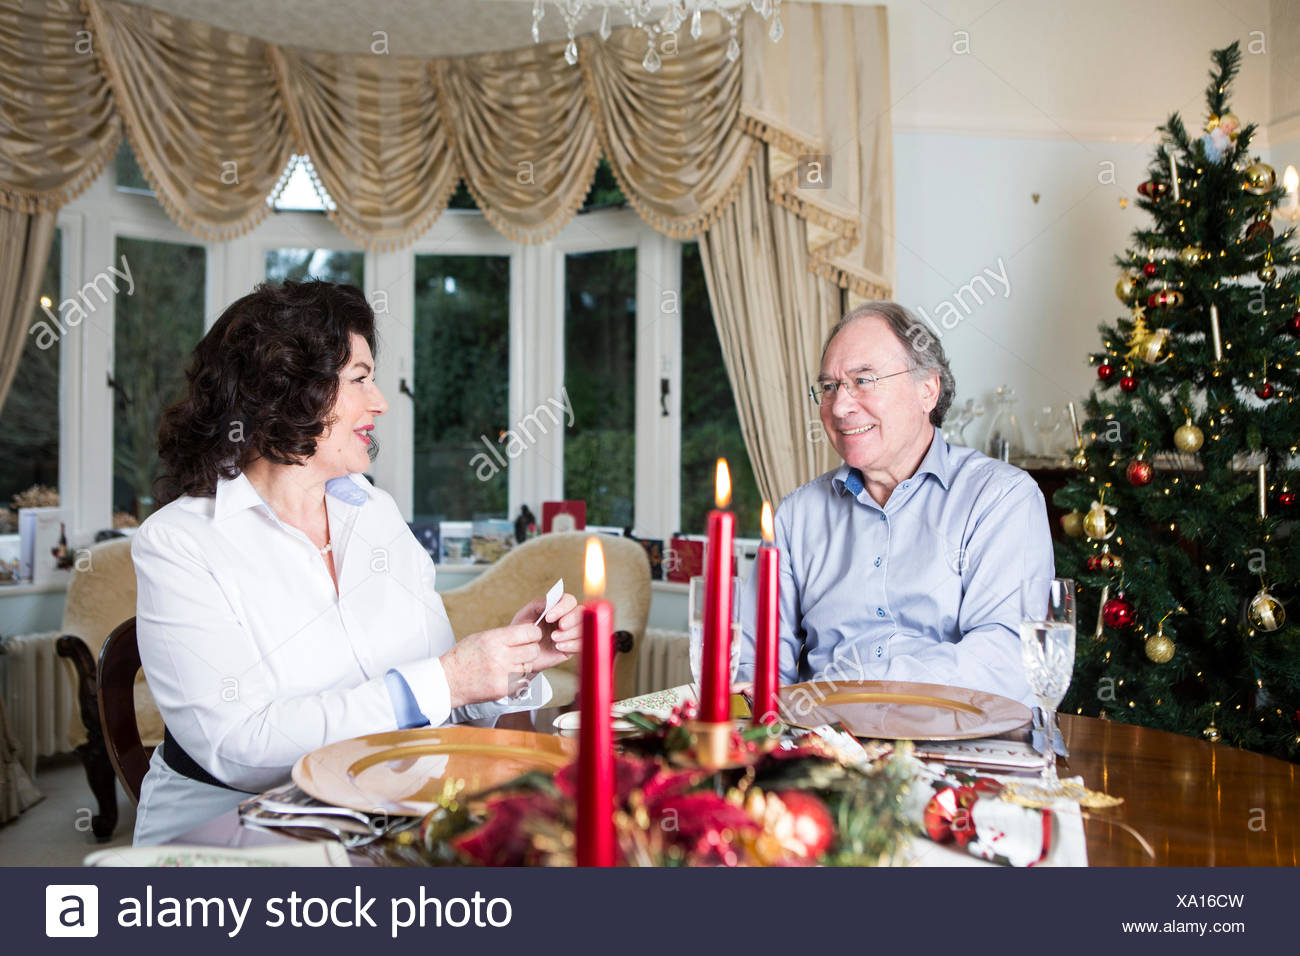 Senior couple sitting at dining table on Christmas Eve - Stock Image